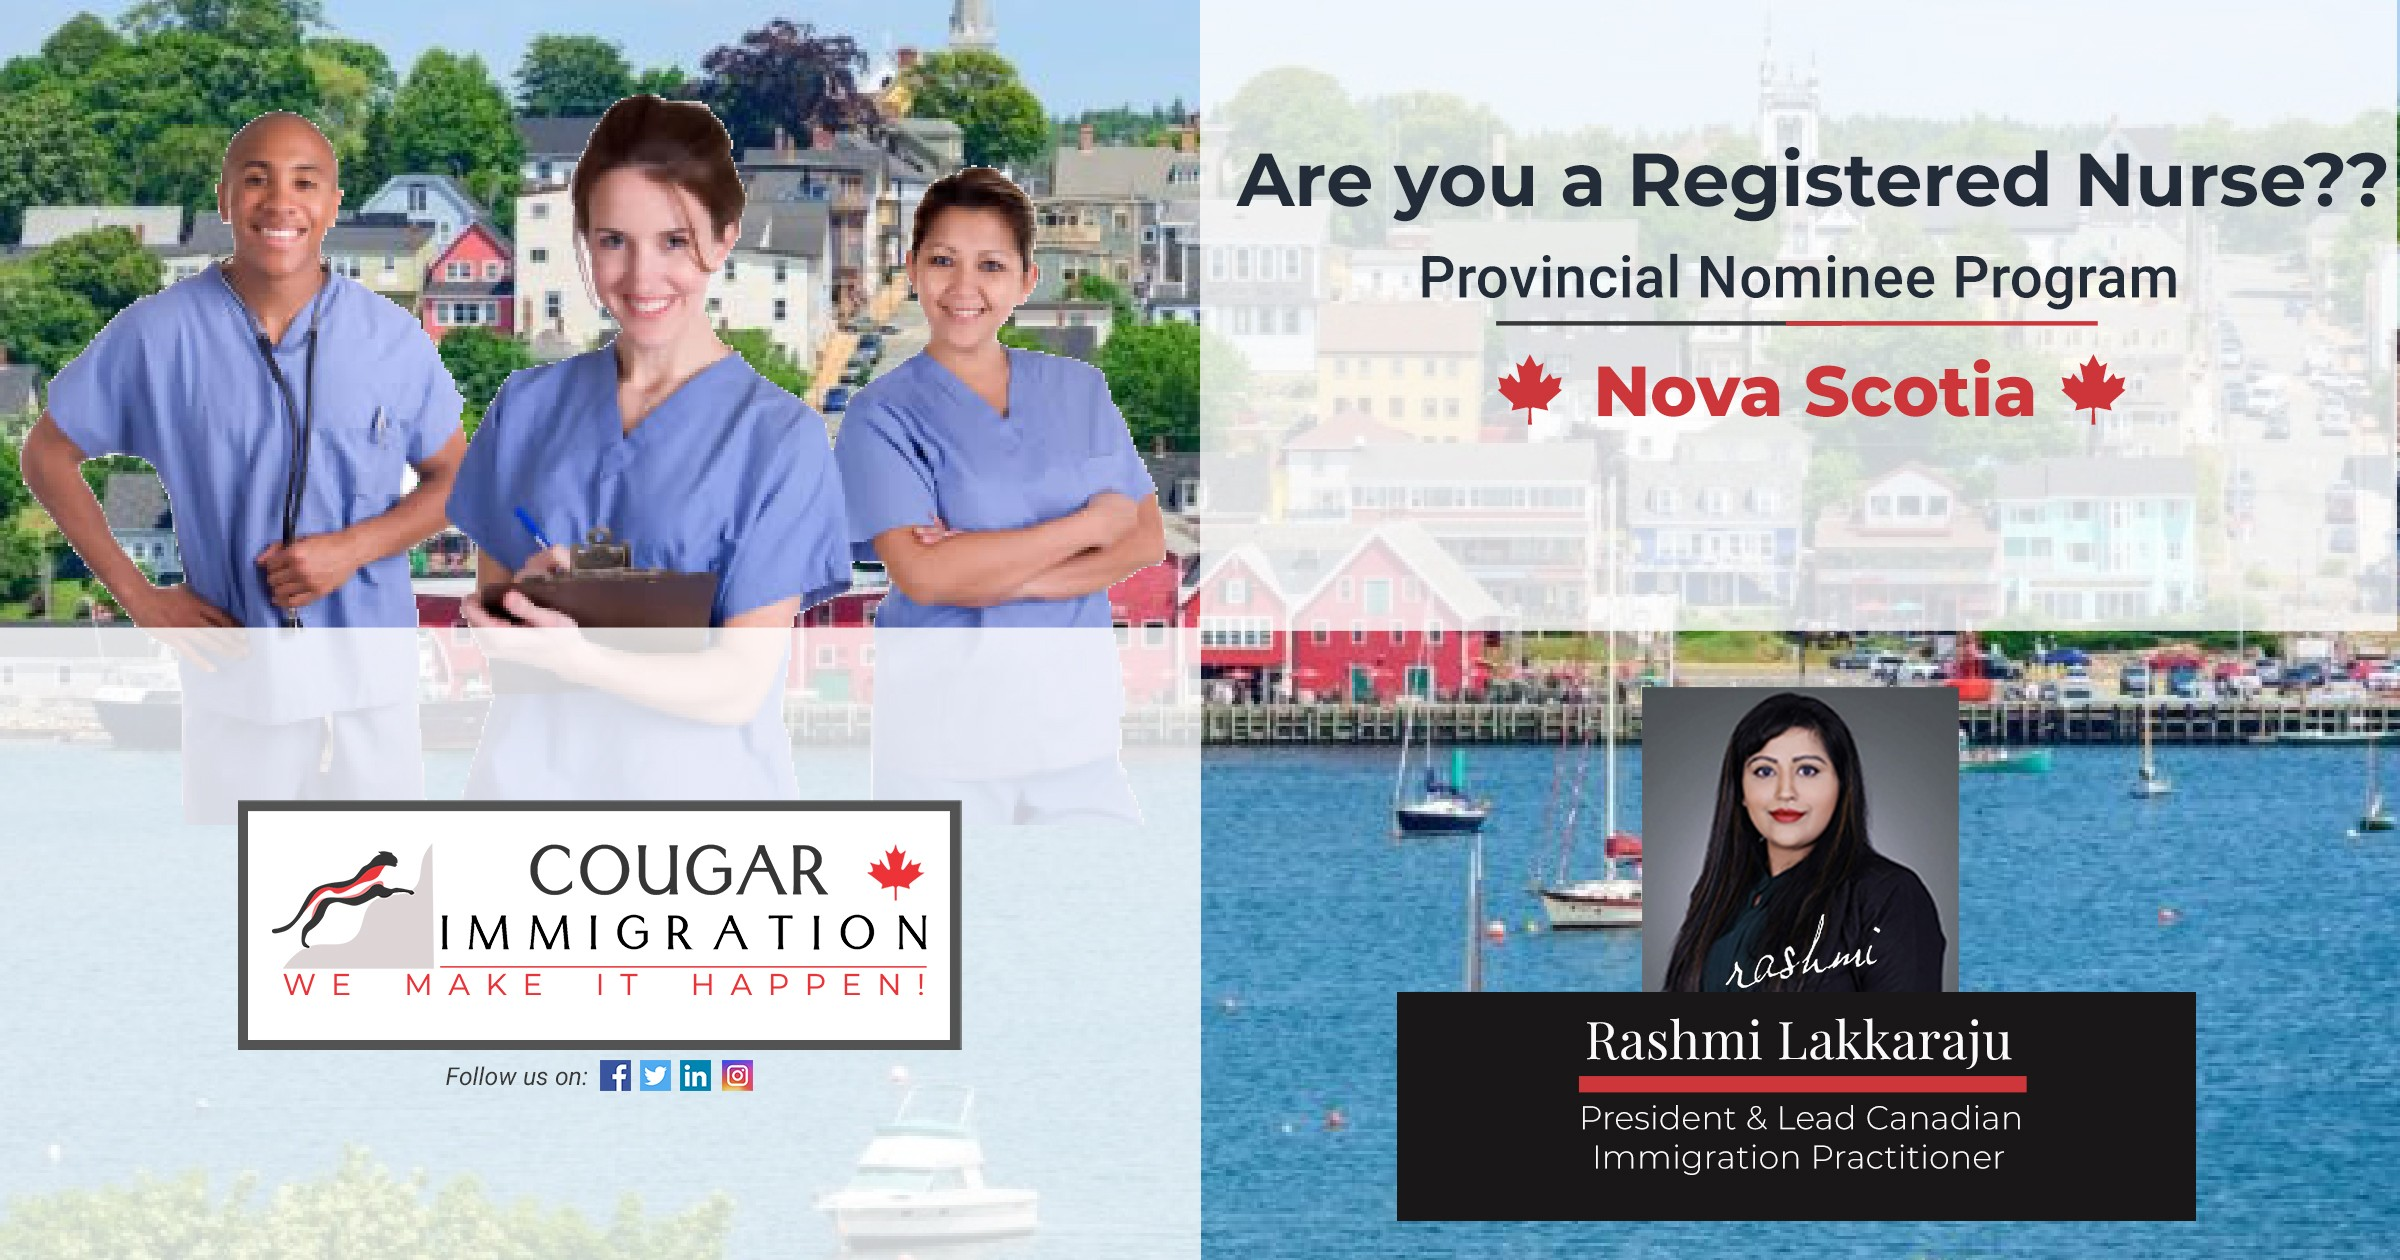 Nova Scotia draws registered nurses from federal Express Entry pool thumbnail